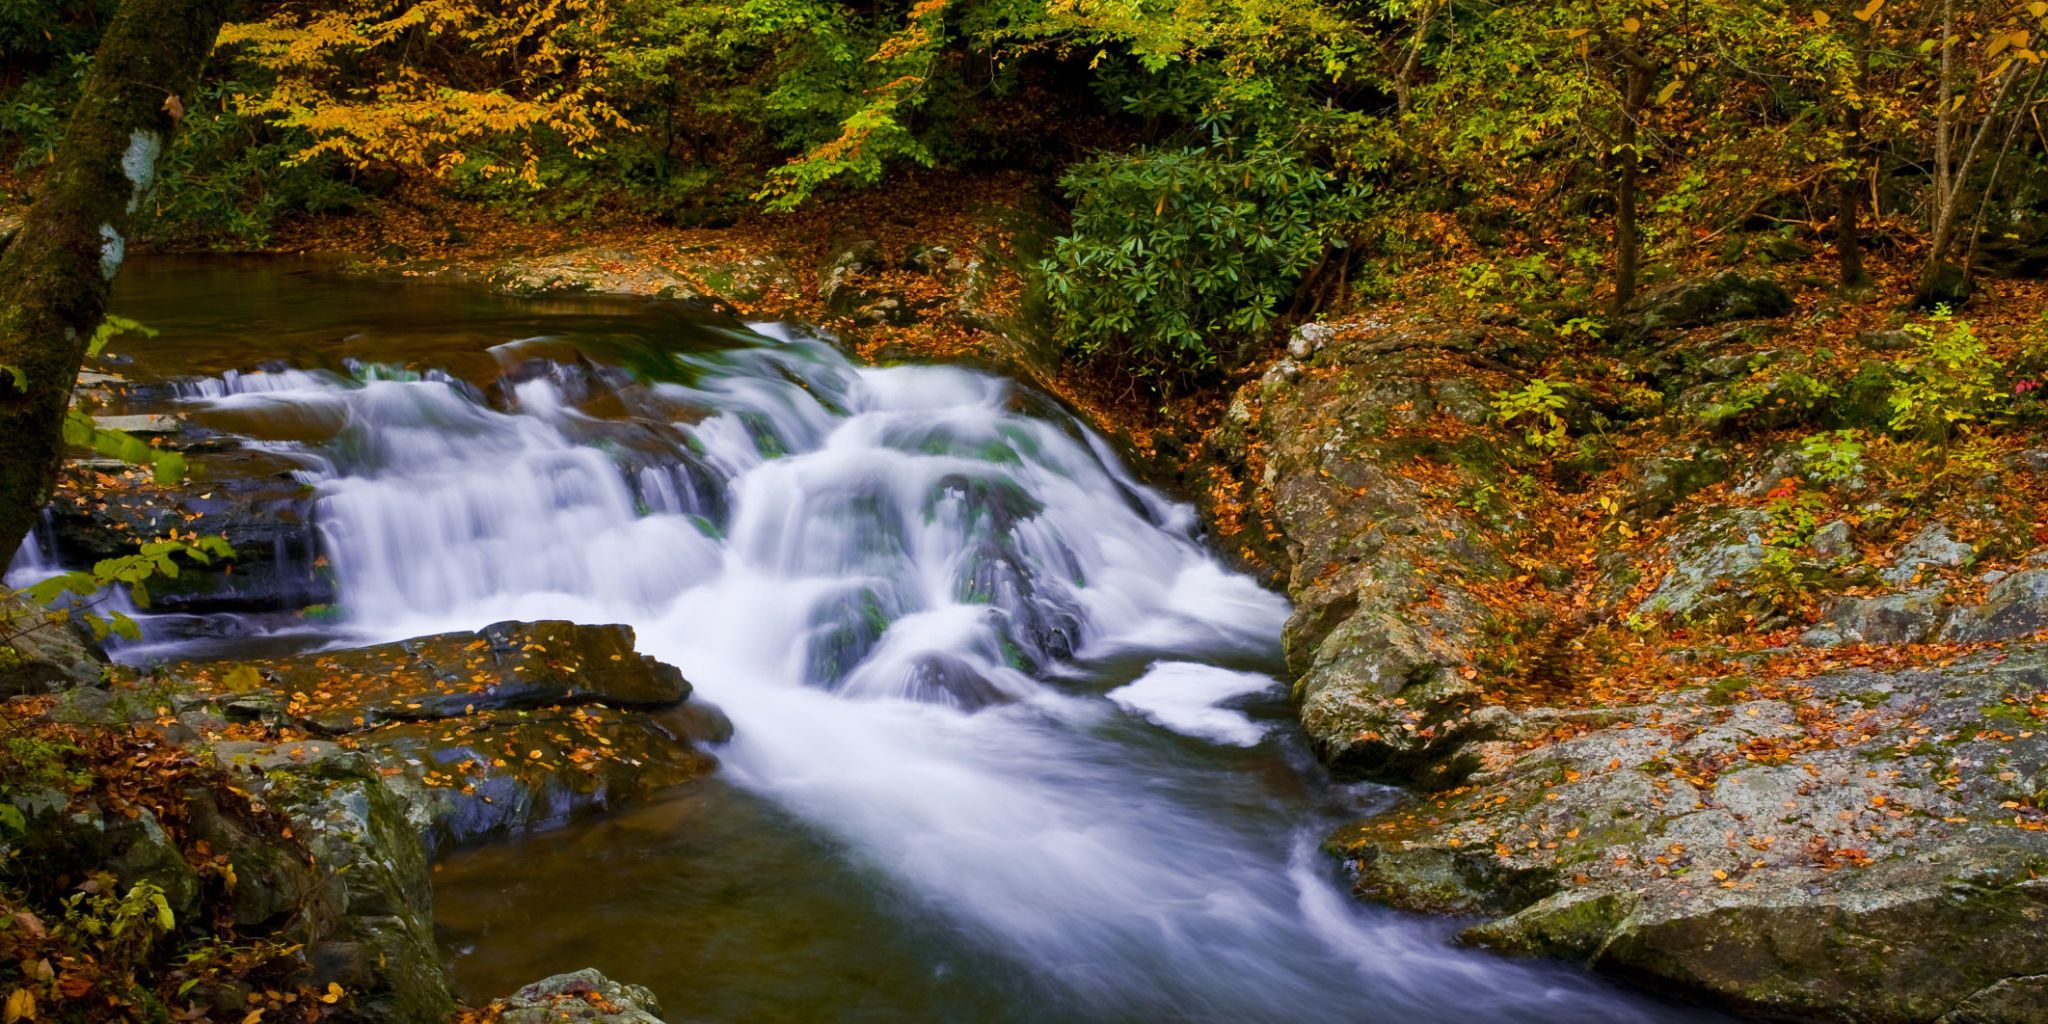 19 Stunning Photos of National Parks in the Fall